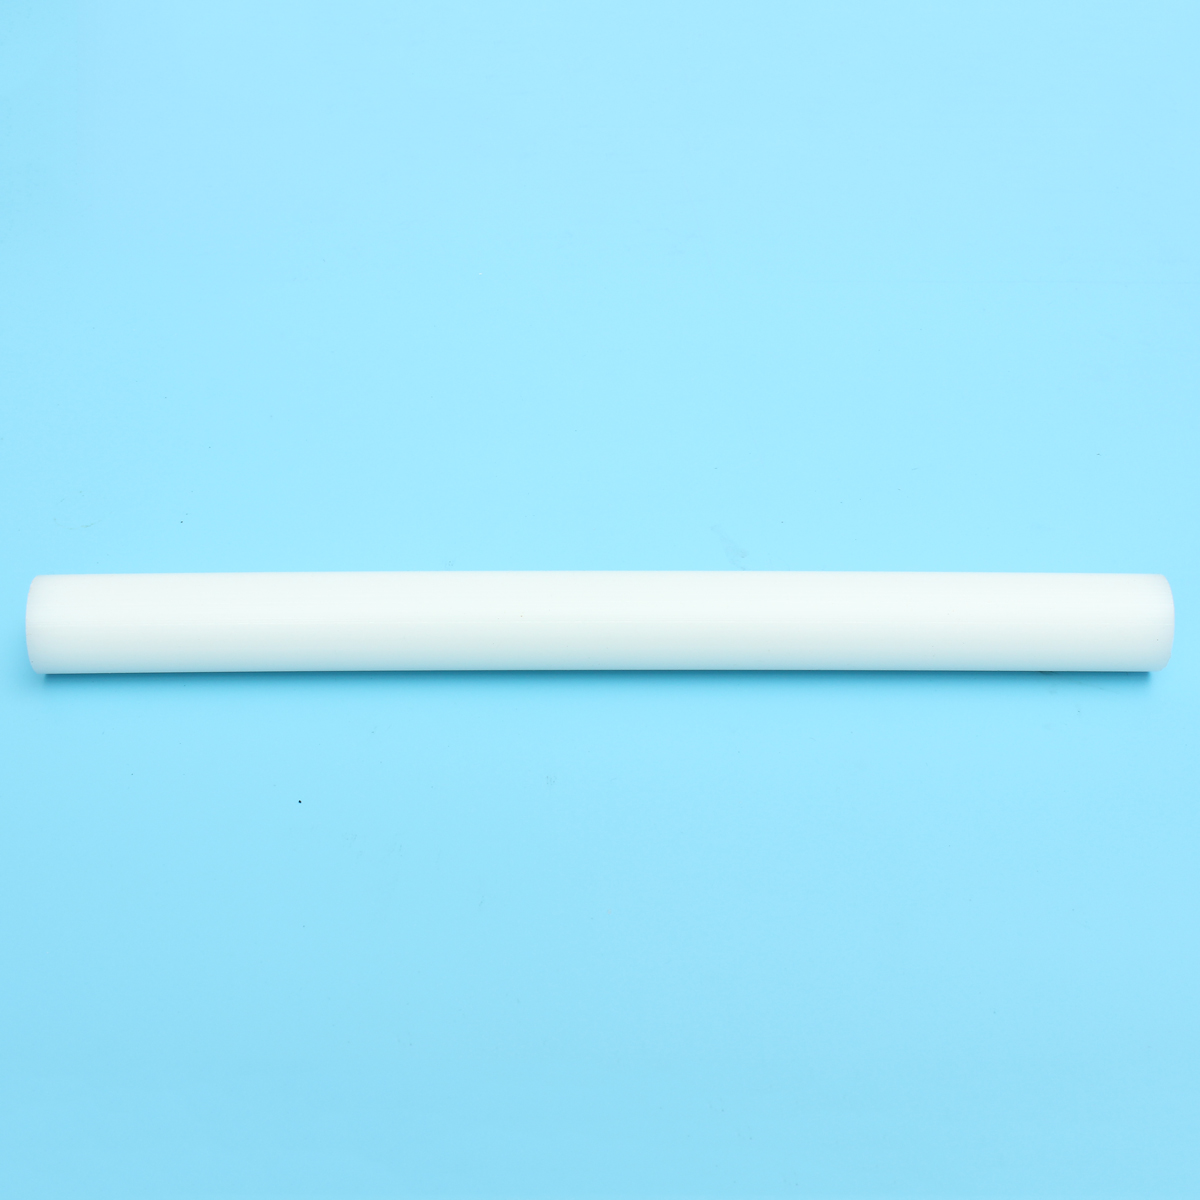 5.25 diameter by 12.25 High density Polyethylene bar White HDPE Plastic Rod